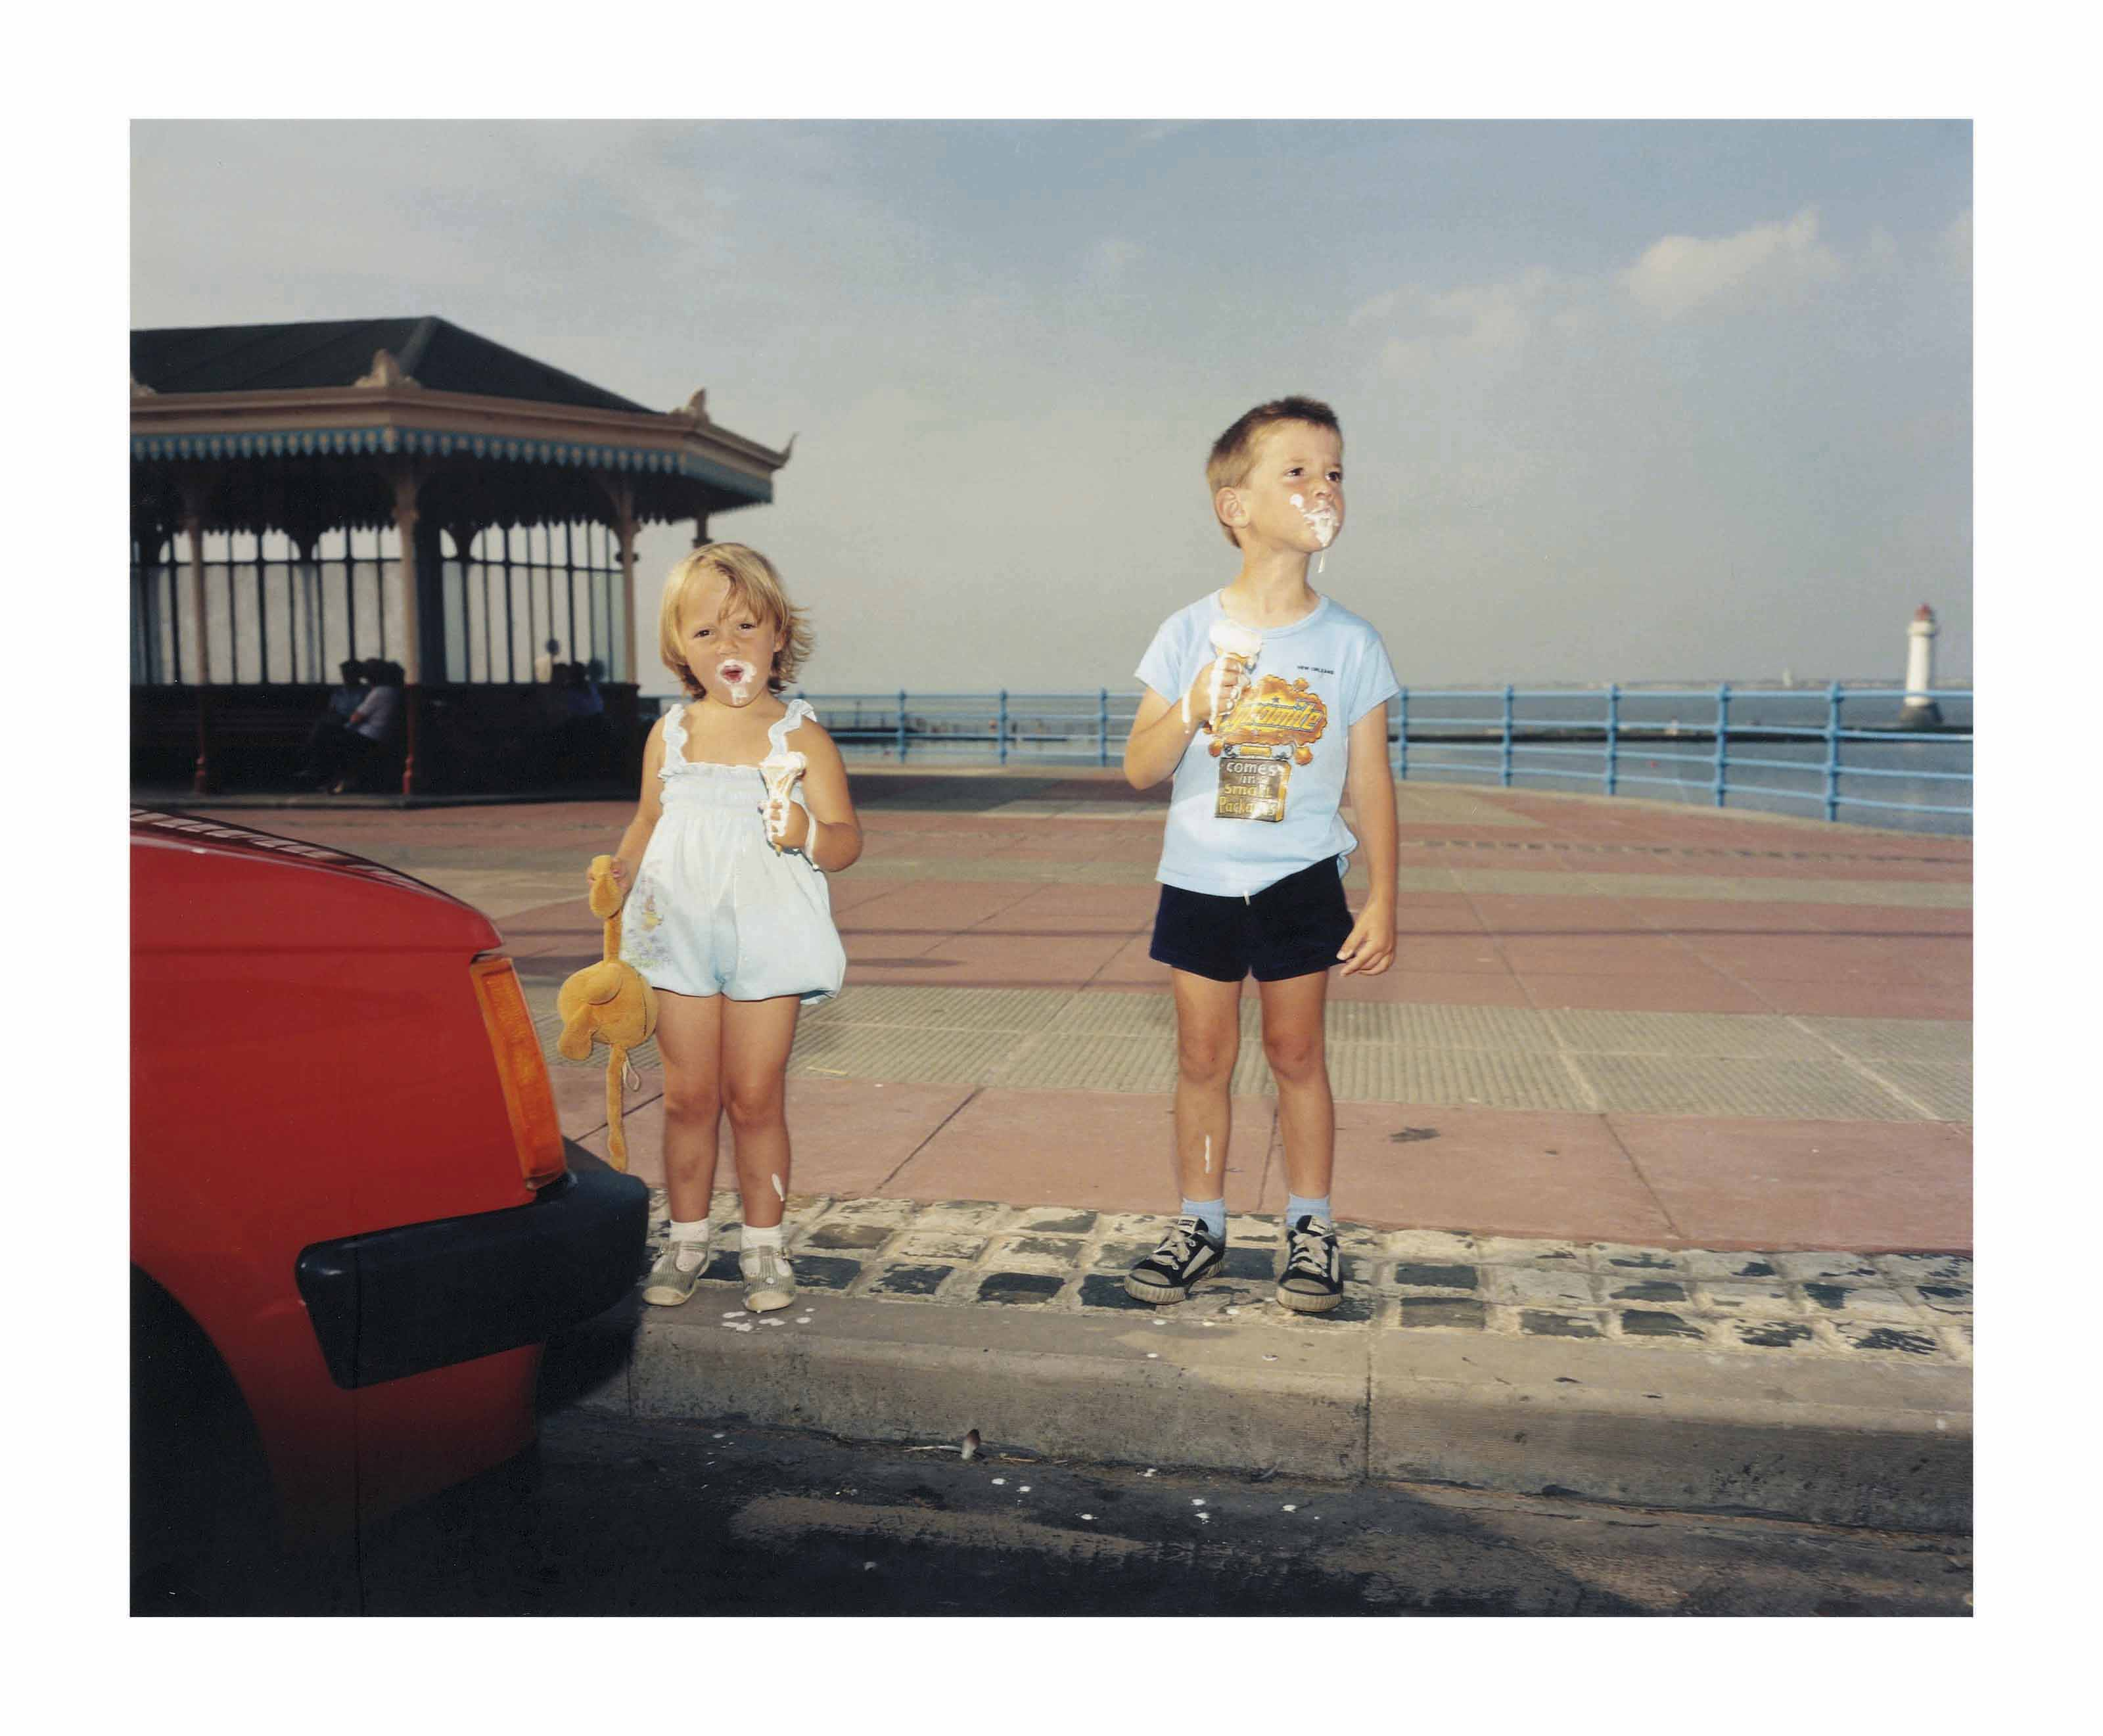 GB., England, New Brighton, from The Last Resort, 1983-1985